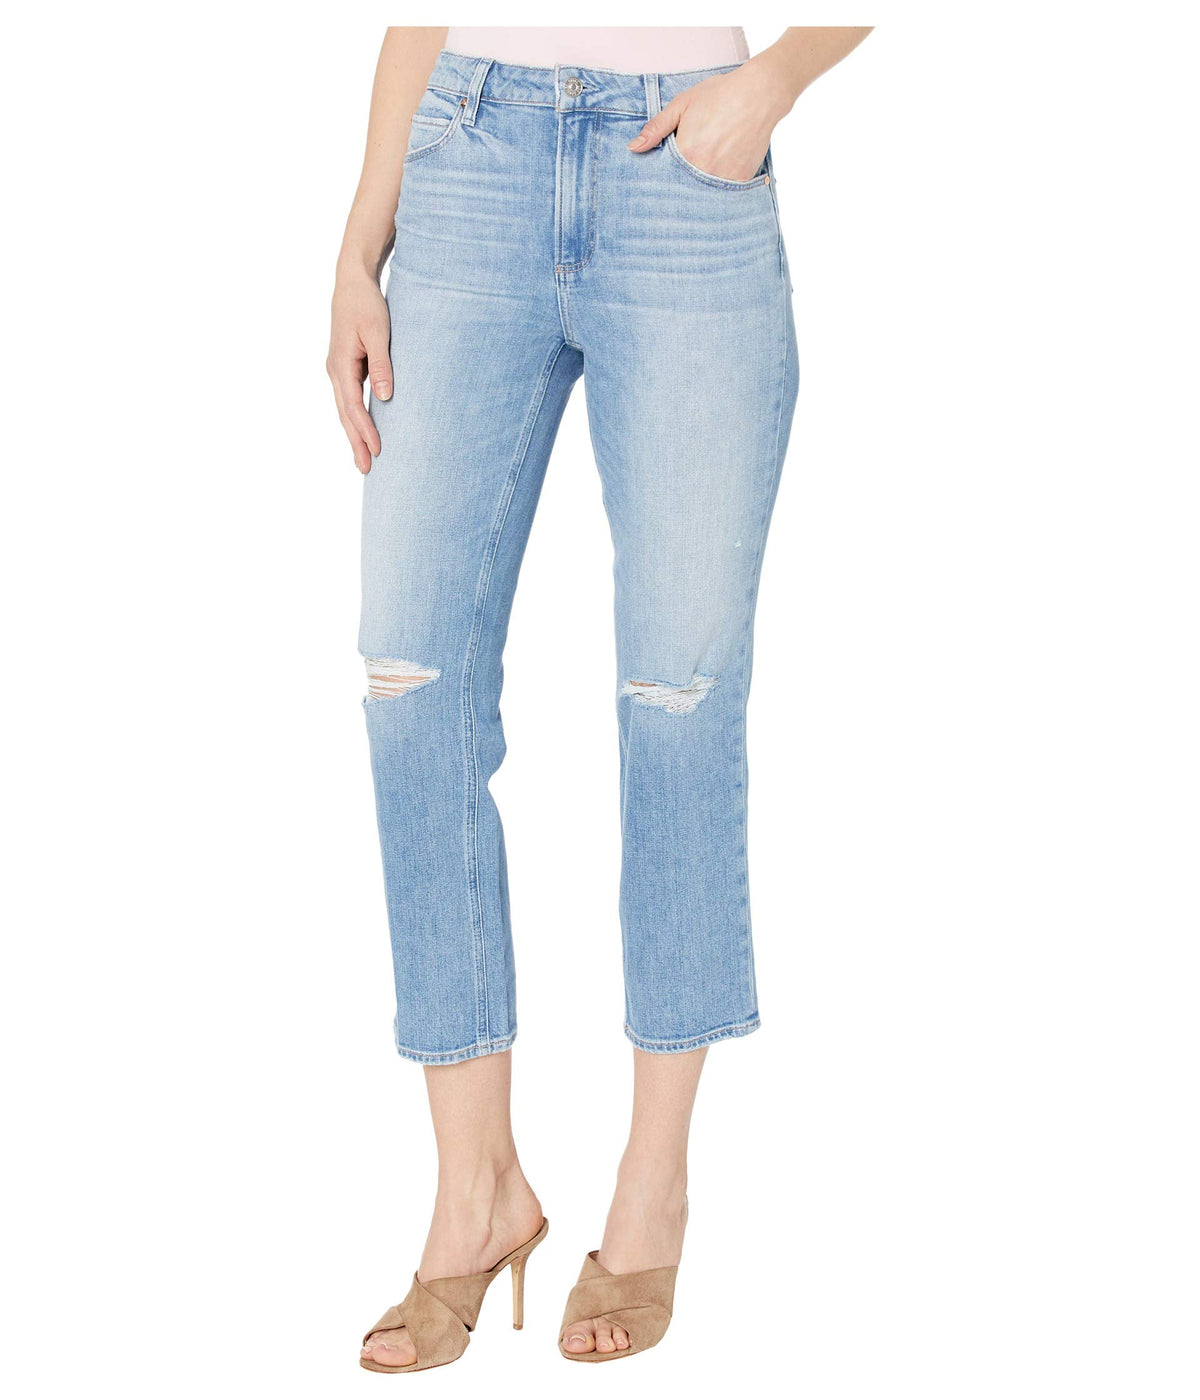 Sarah Straight Ankle Jeans in Solera Destructed